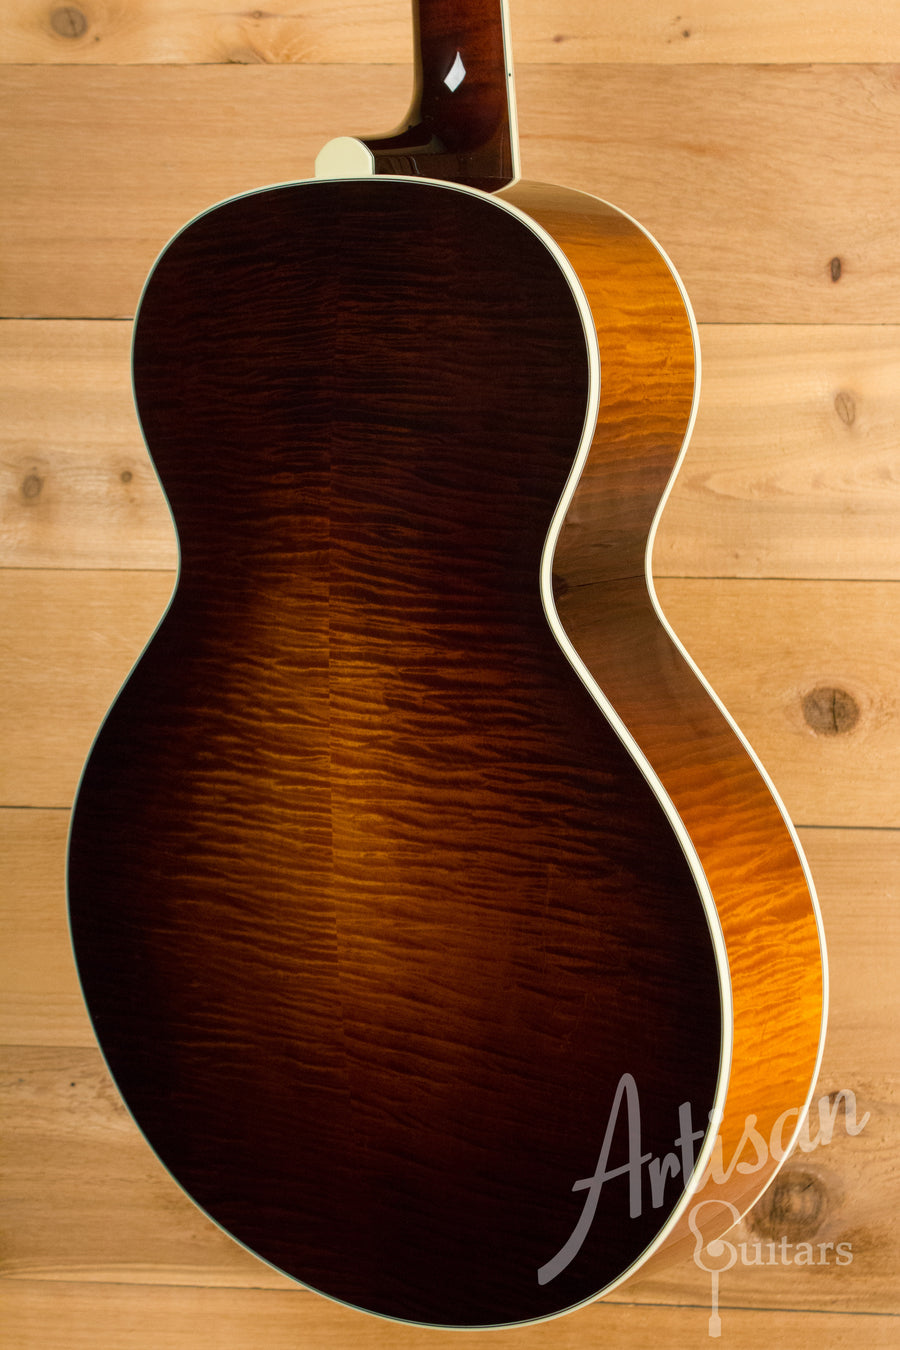 Collings Archtop 16 Electric Guitar Italian Spruce with Sunburst ID-10606 - Artisan Guitars